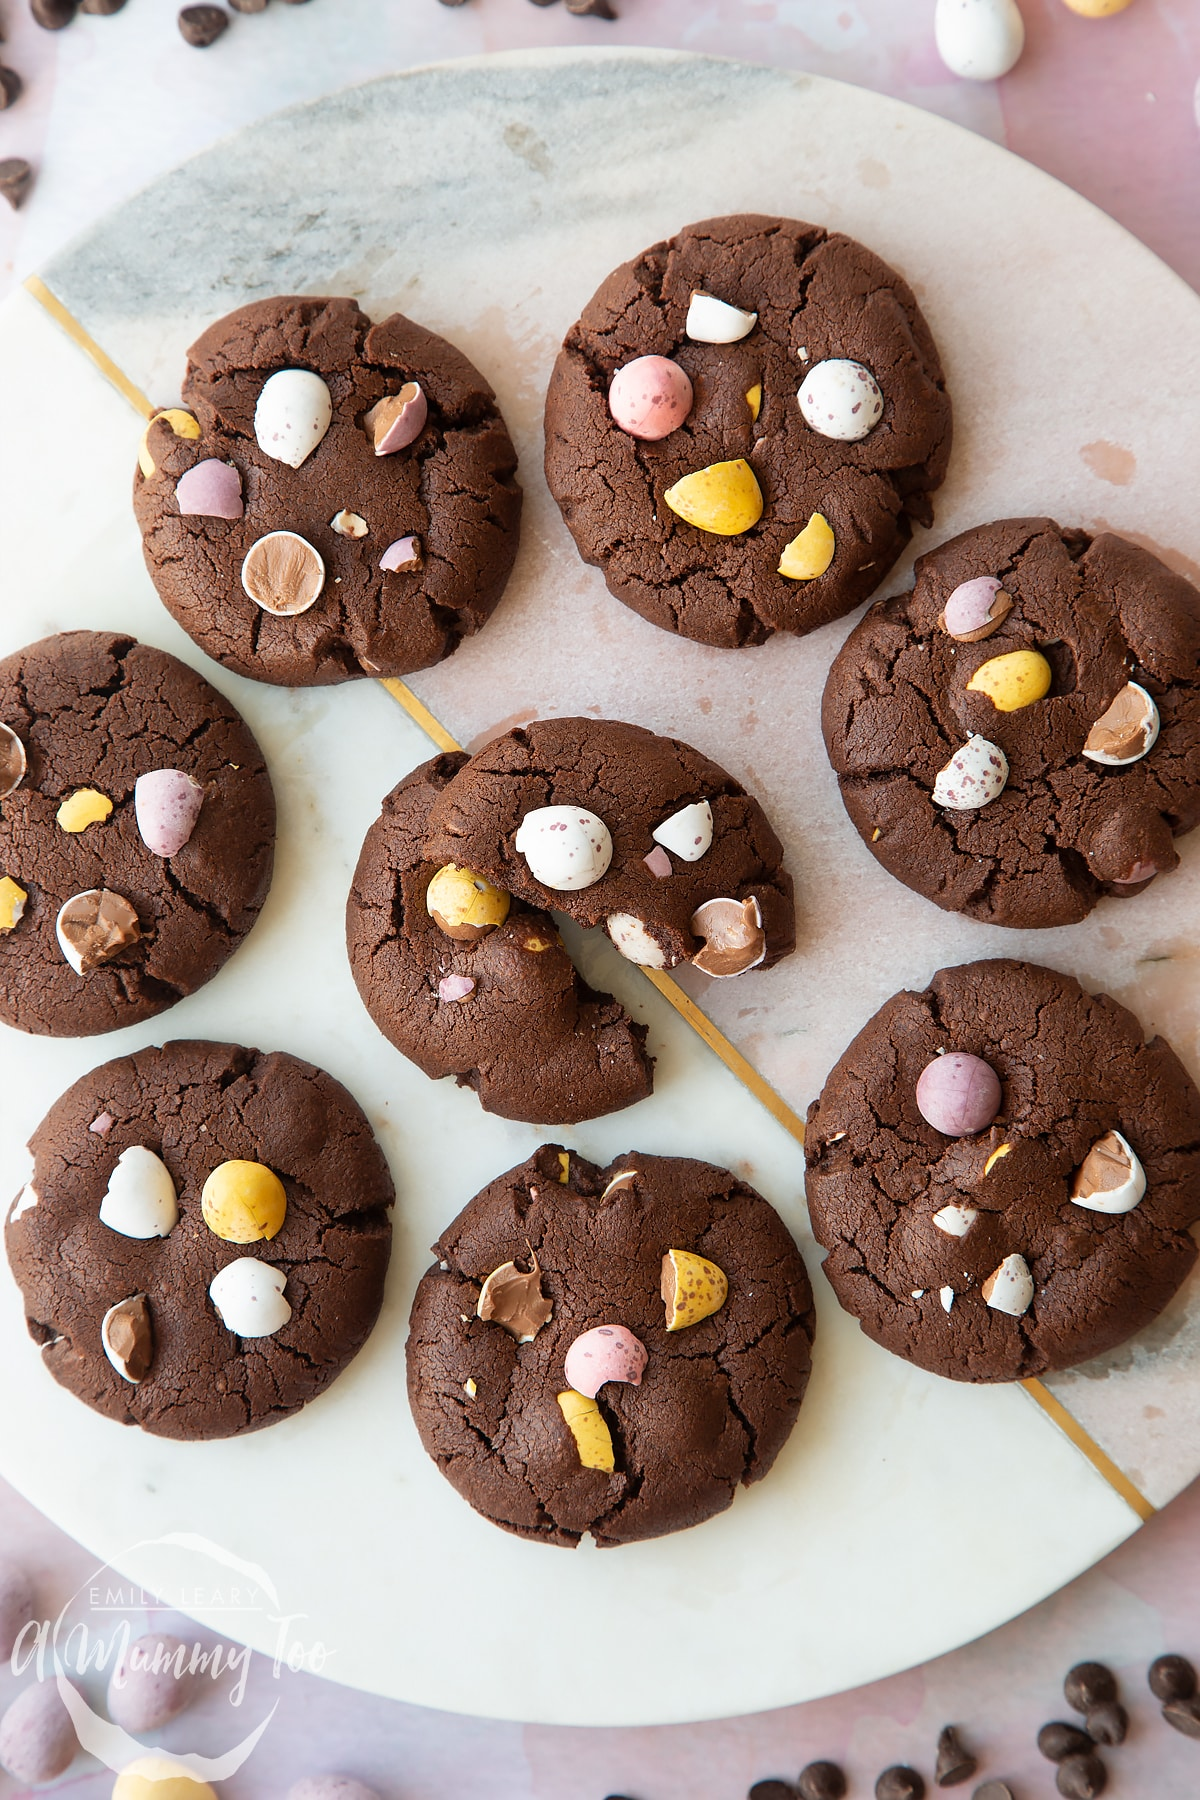 Chocolate Easter cookies arranged on a round marble board. One is broken in half.